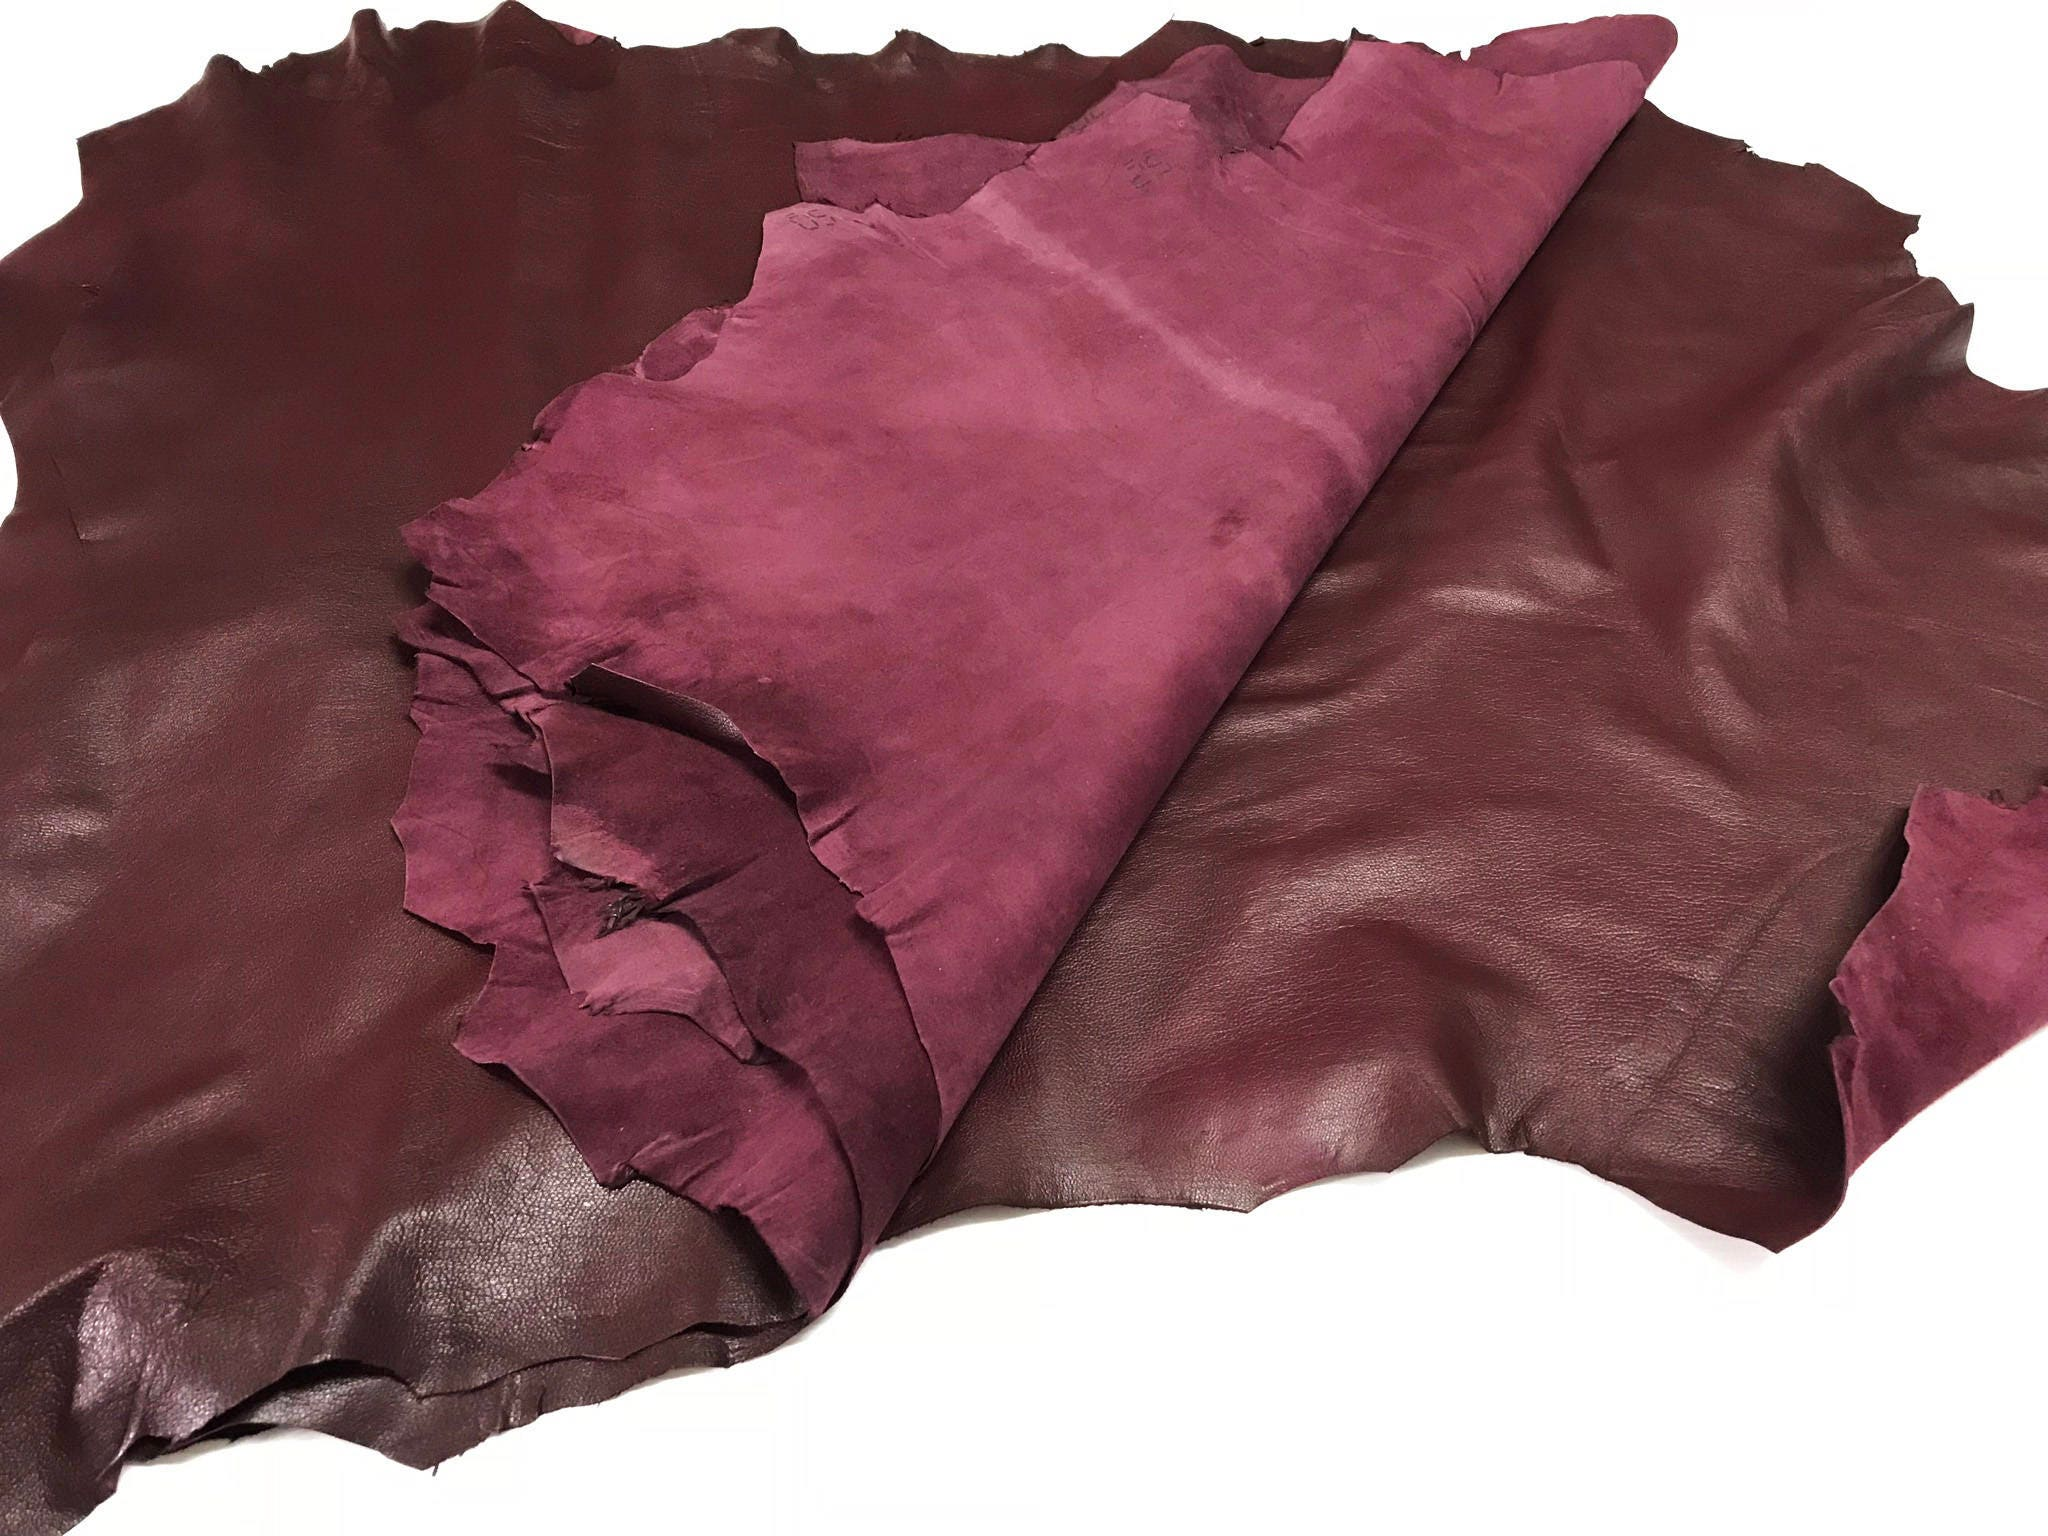 ITALIAN Goat Suede Leather Hide skin skins hides DARK RED WINE BURGUNDY # 450